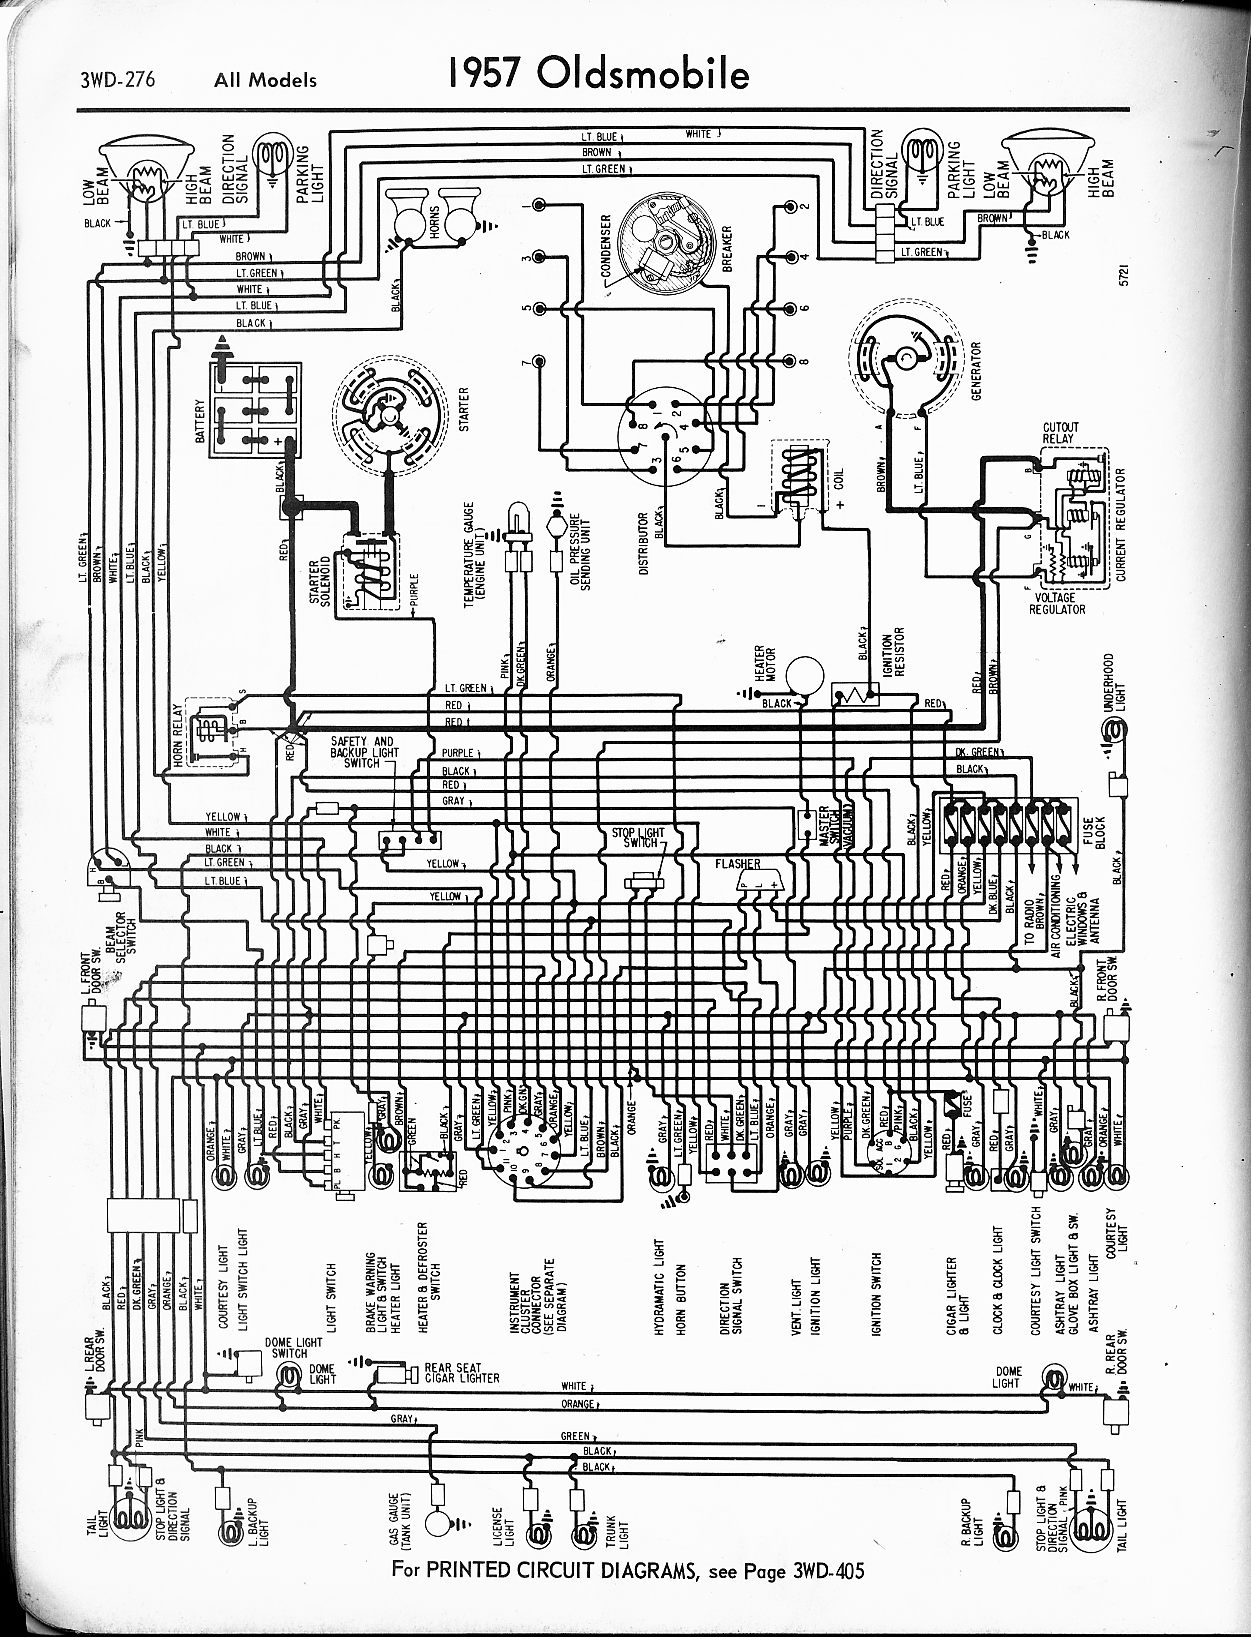 MWire5765 276 oldsmobile wiring diagrams the old car manual project 1957 oldsmobile wiring diagram at beritabola.co